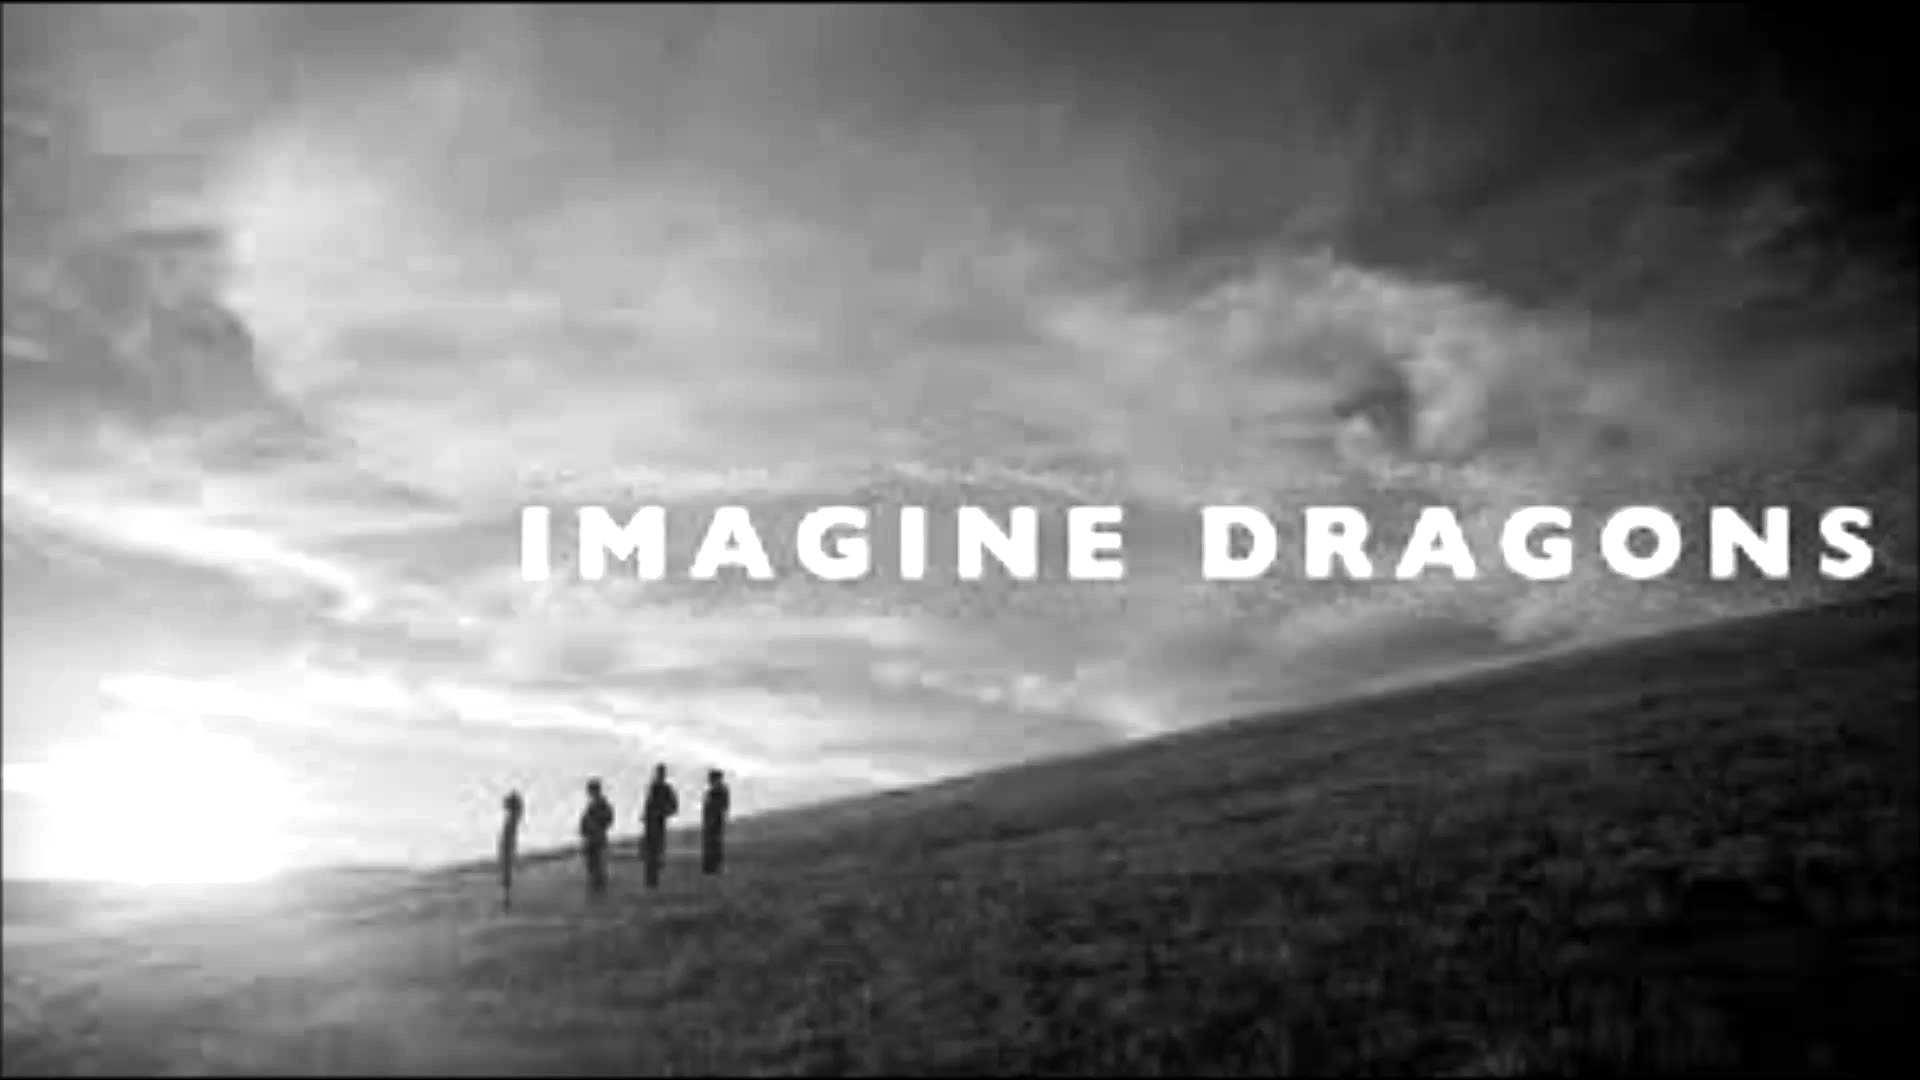 imagine dragons wallpapers - wallpaper cave